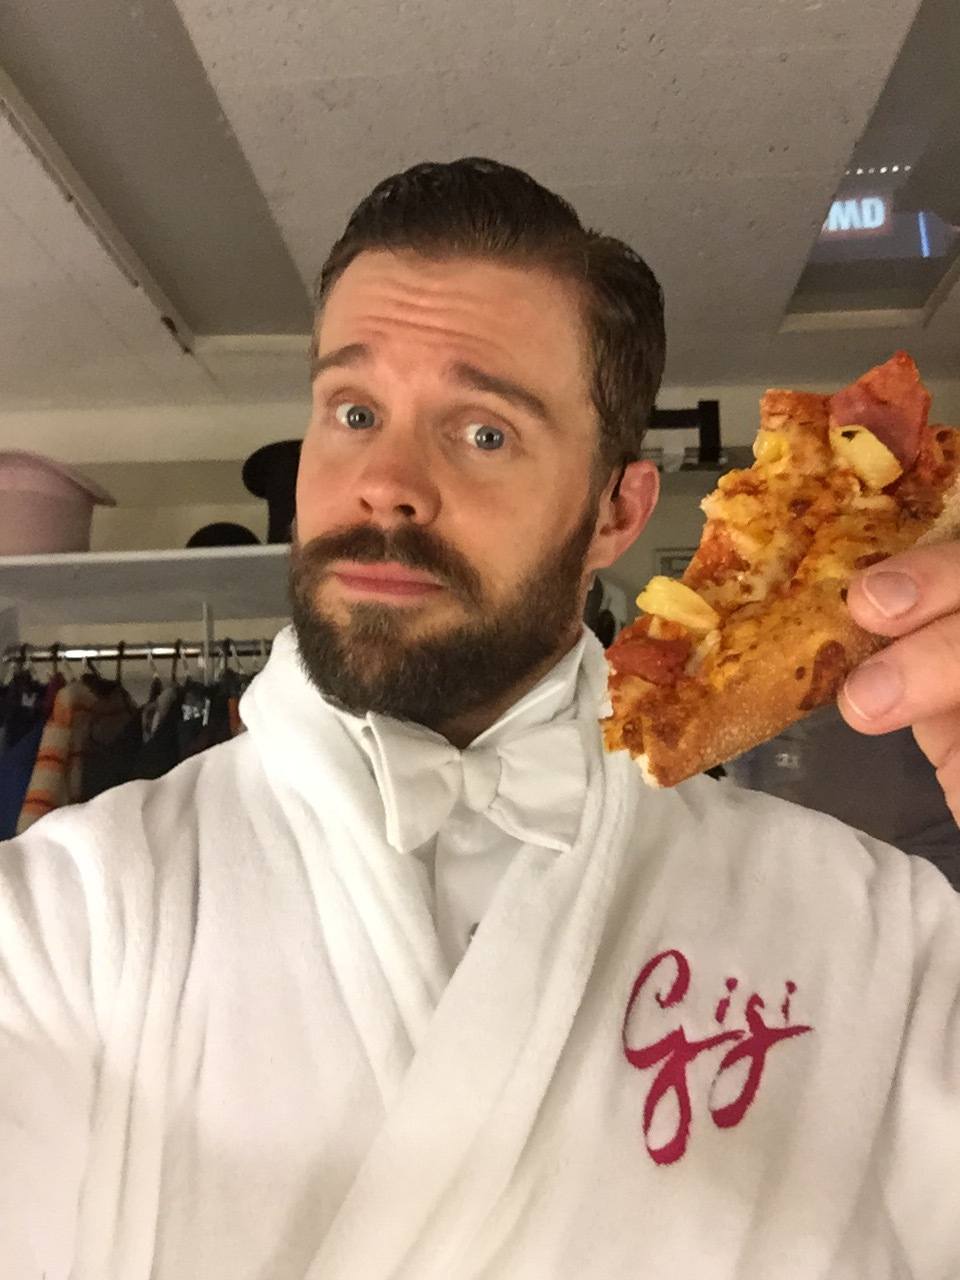 If you're going to eat pizza in a Catherine Zuber tux, be sure to wear a fancy, protective robe.